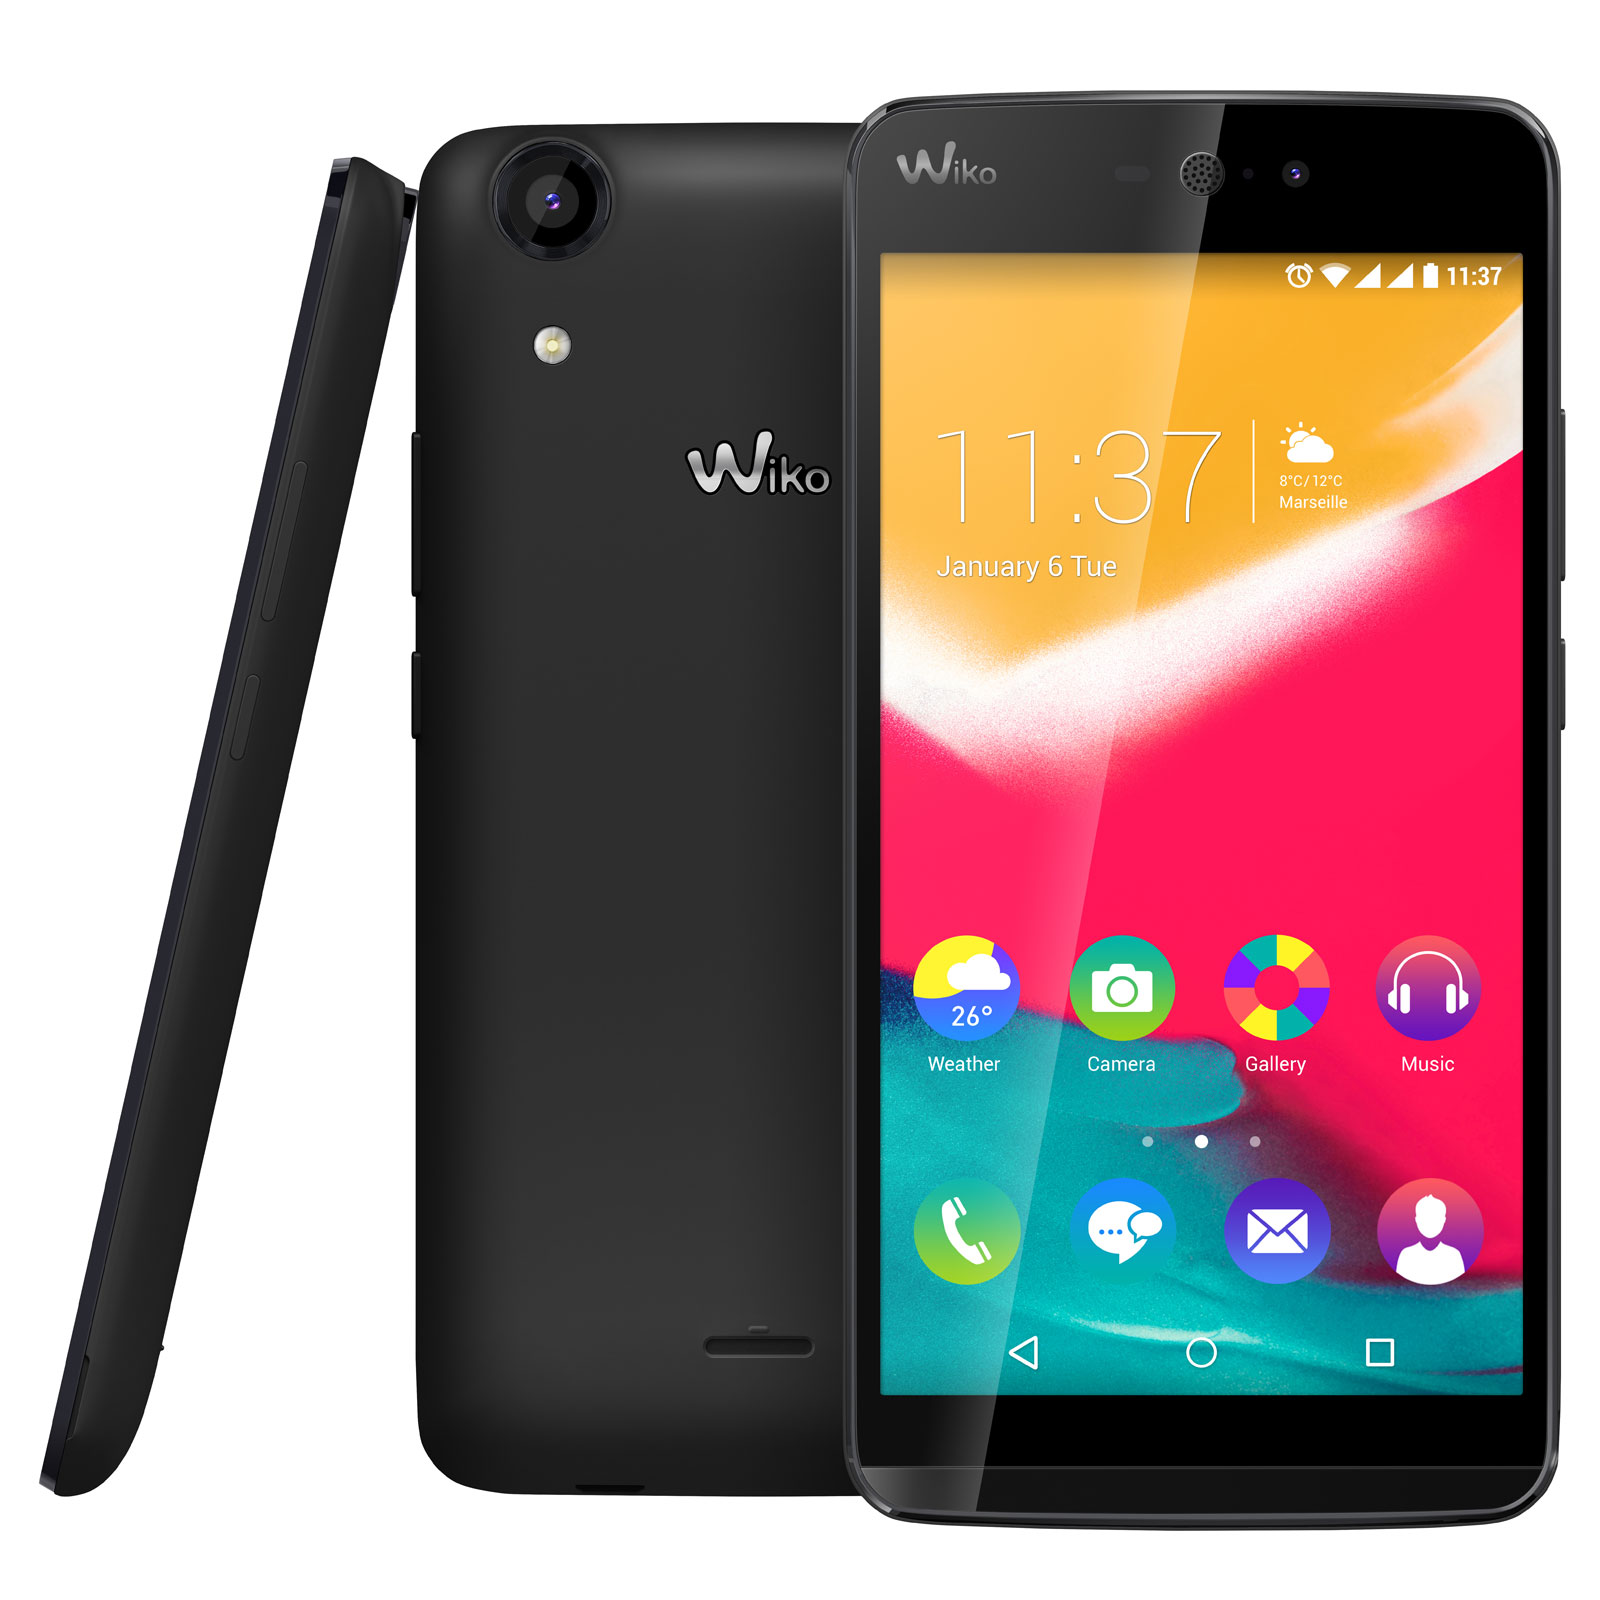 wiko rainbow jam 4g noir mobile smartphone wiko sur ldlc. Black Bedroom Furniture Sets. Home Design Ideas